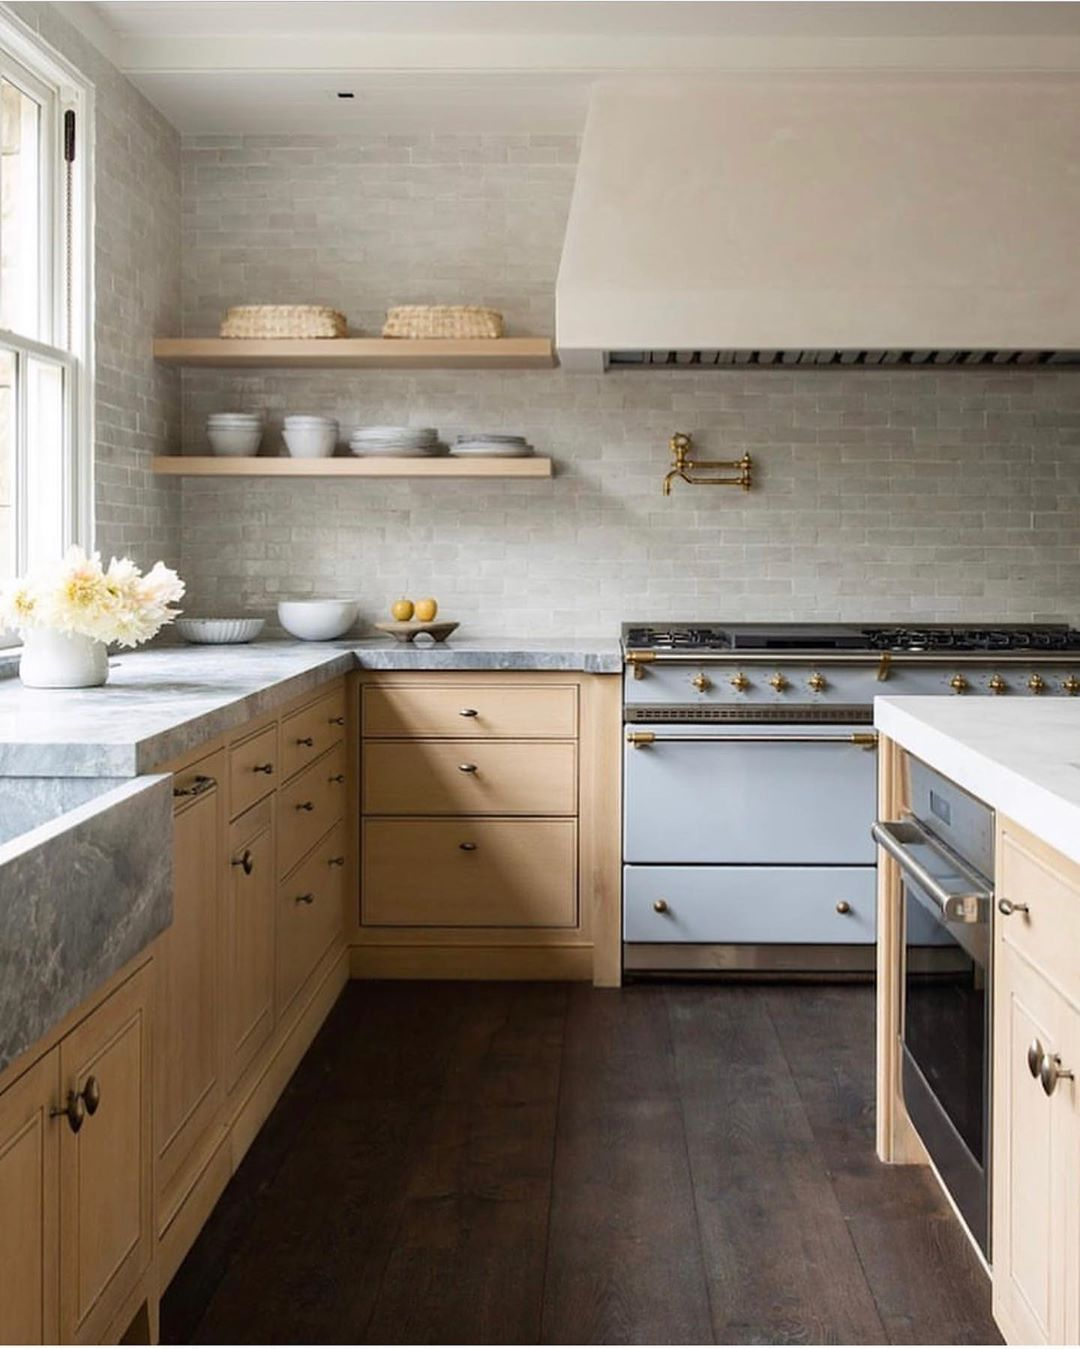 Vivir Design On Instagram One Of Our Favorite Kitchens So Clean Simple And Warm Design M E Interior Design Kitchen Kitchen Inspirations Kitchen Design